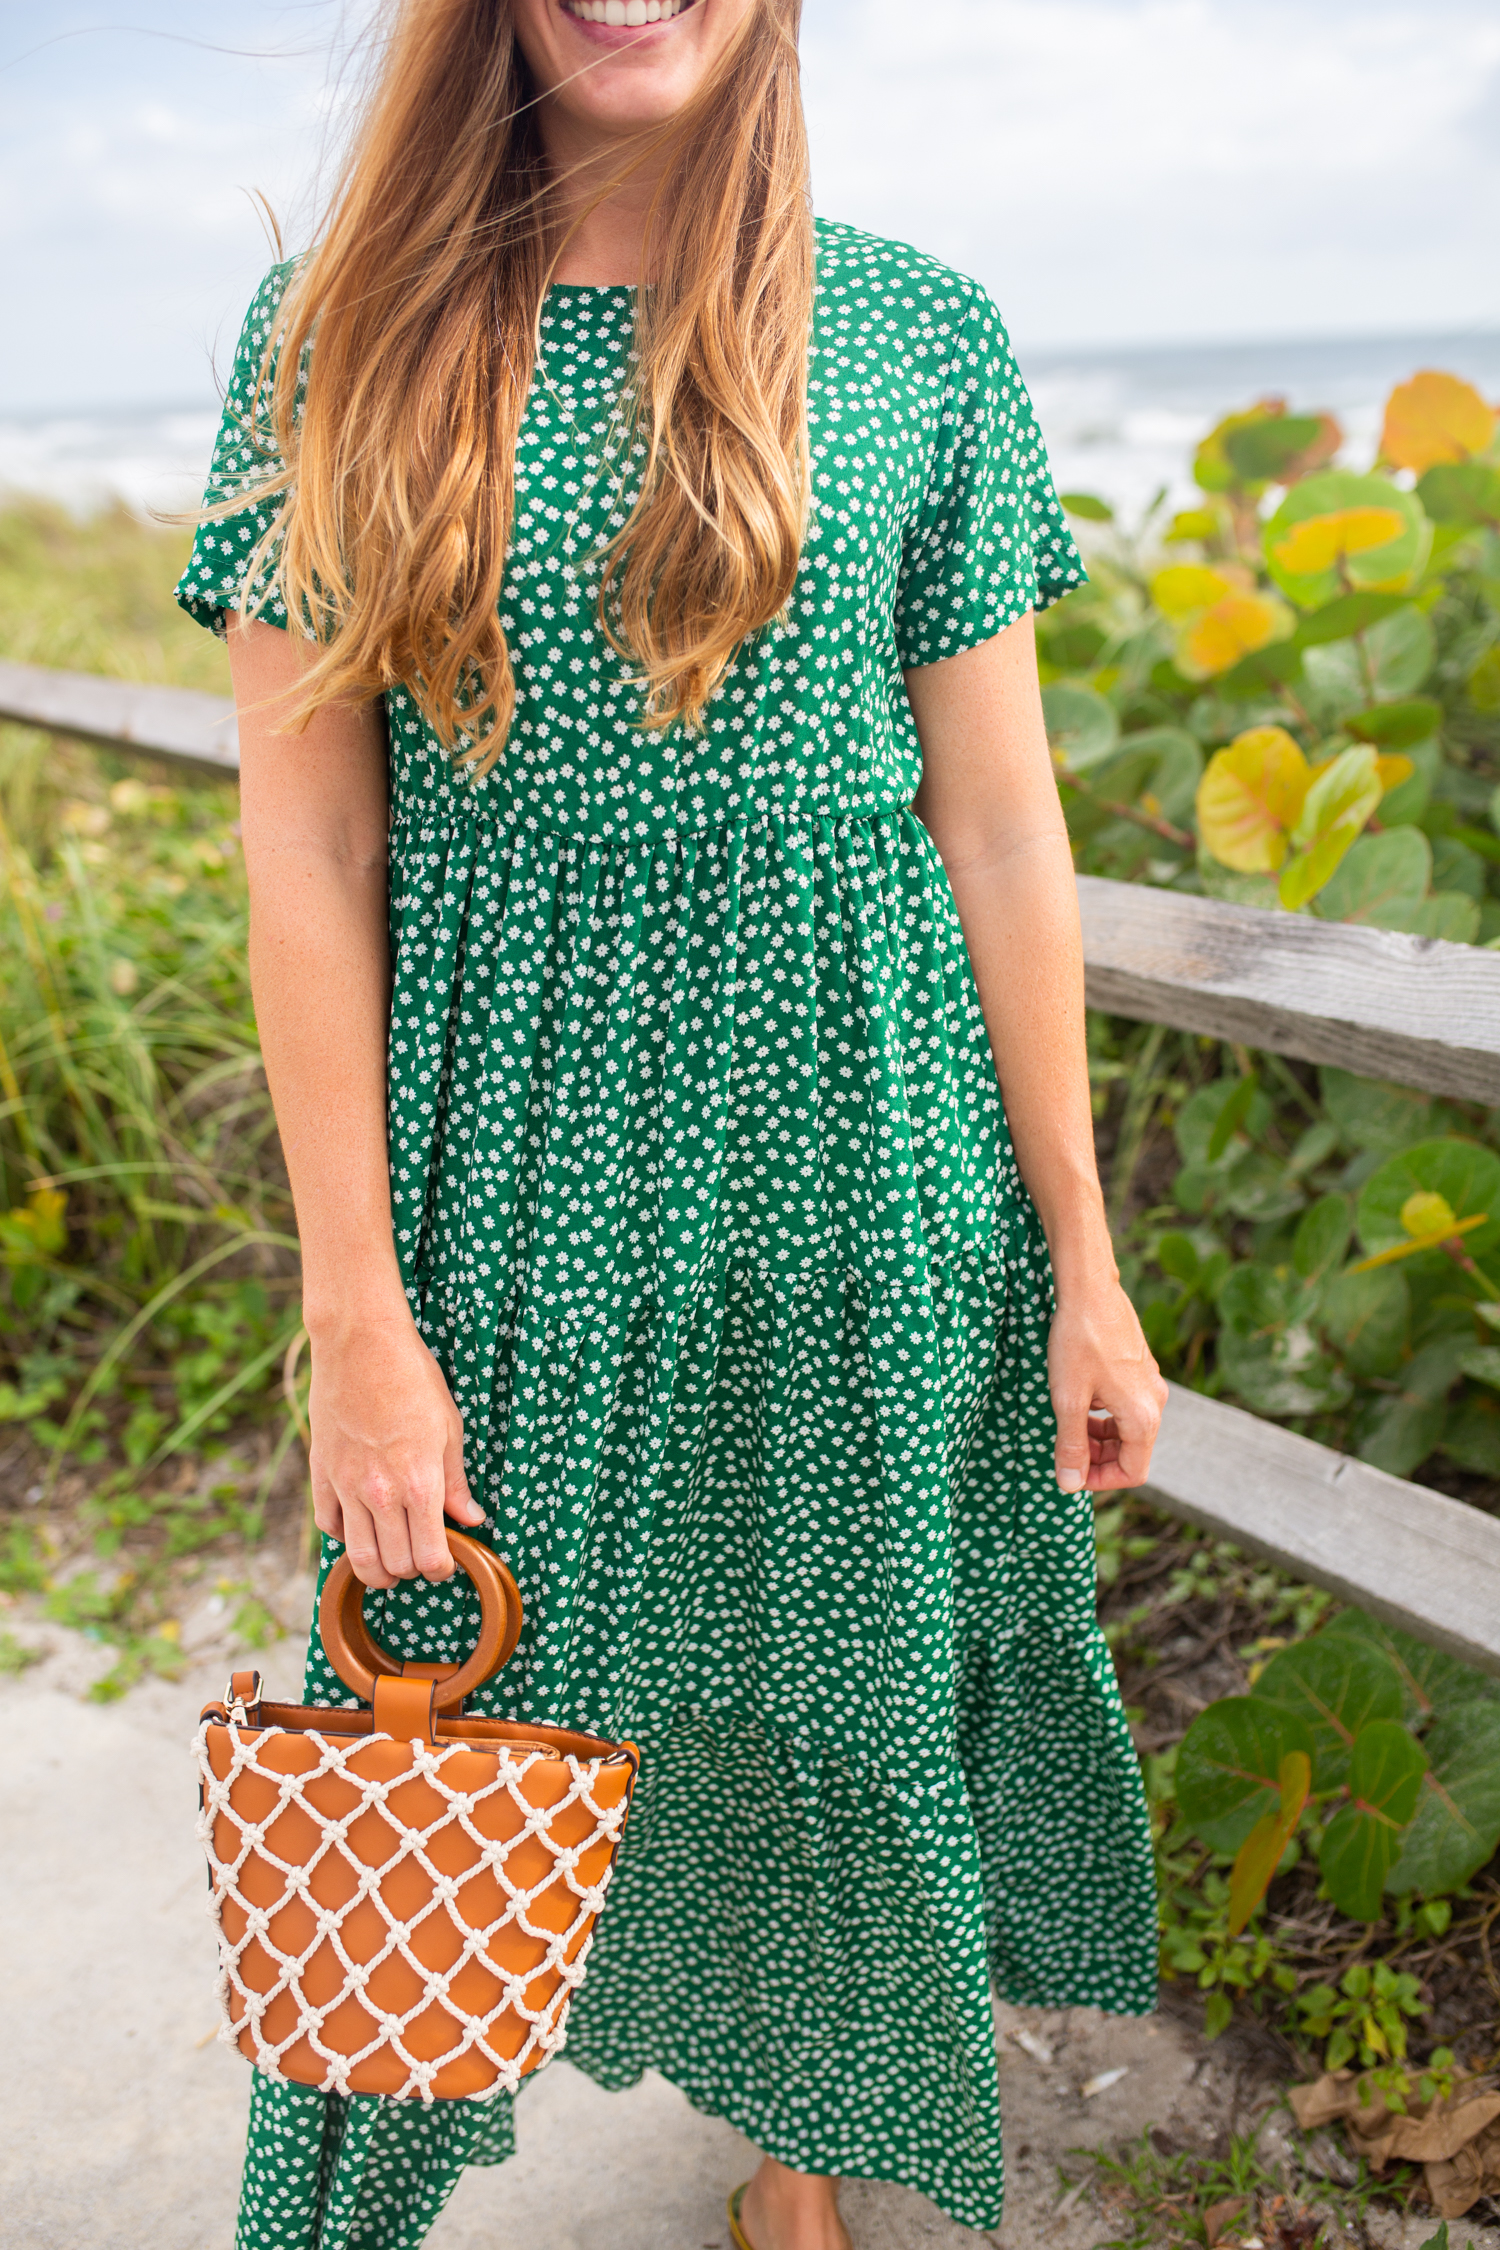 What to Wear This Fall When It's Still Warm Out / Fall Dress Outfit / Fall Dress Casual / Green Maxi Dress / Emerald Dress / Yellow Accessories / Cute Fall Dresses / Autumn Outfits - Sunshine Style, A Florida Fashion and Lifestyle Blog by Katie